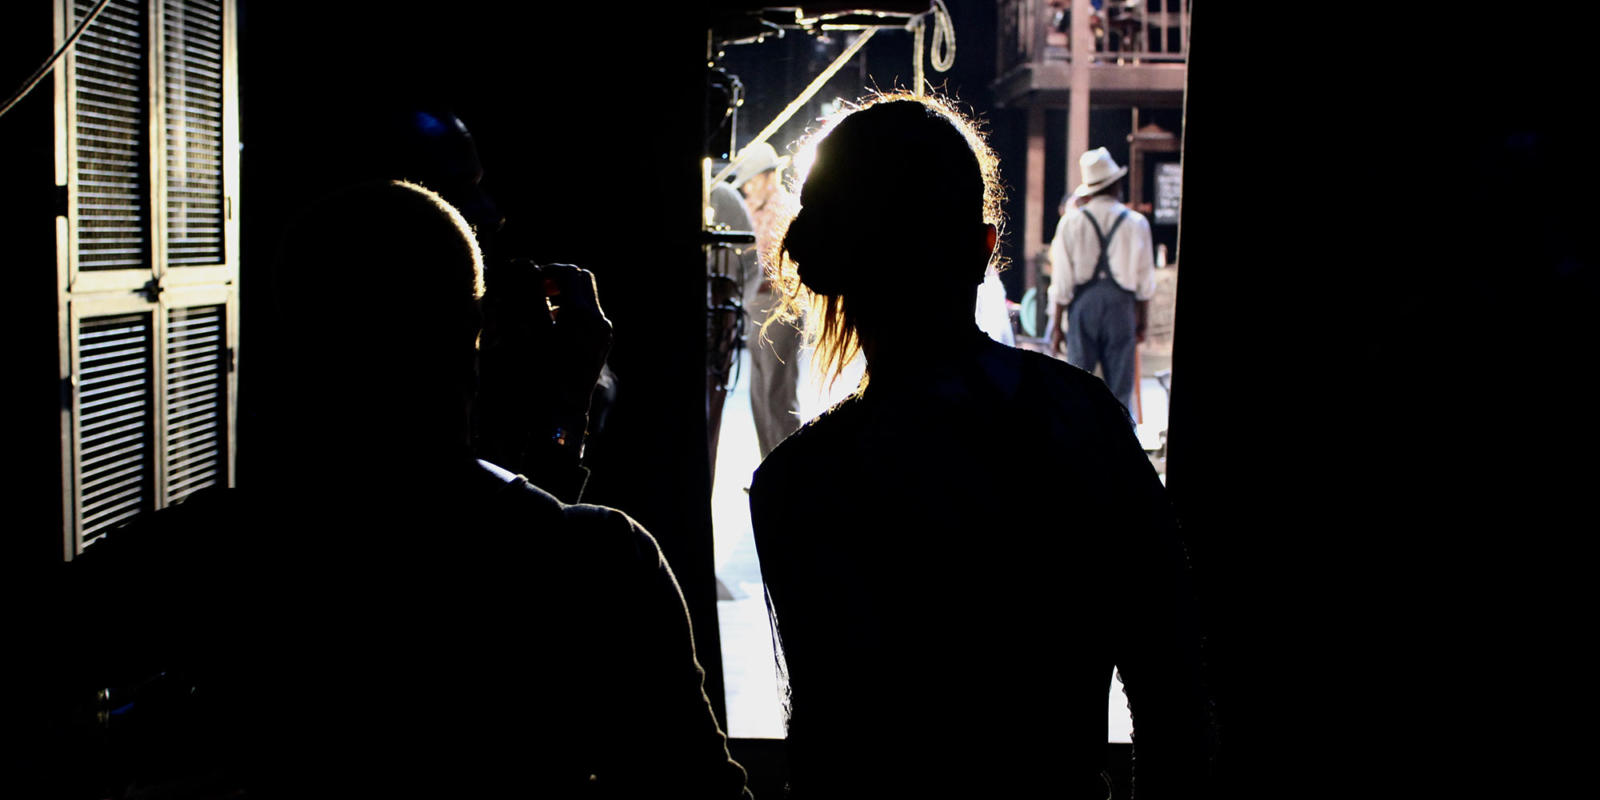 Members of the Stage Management Team look on at the performance from the wings